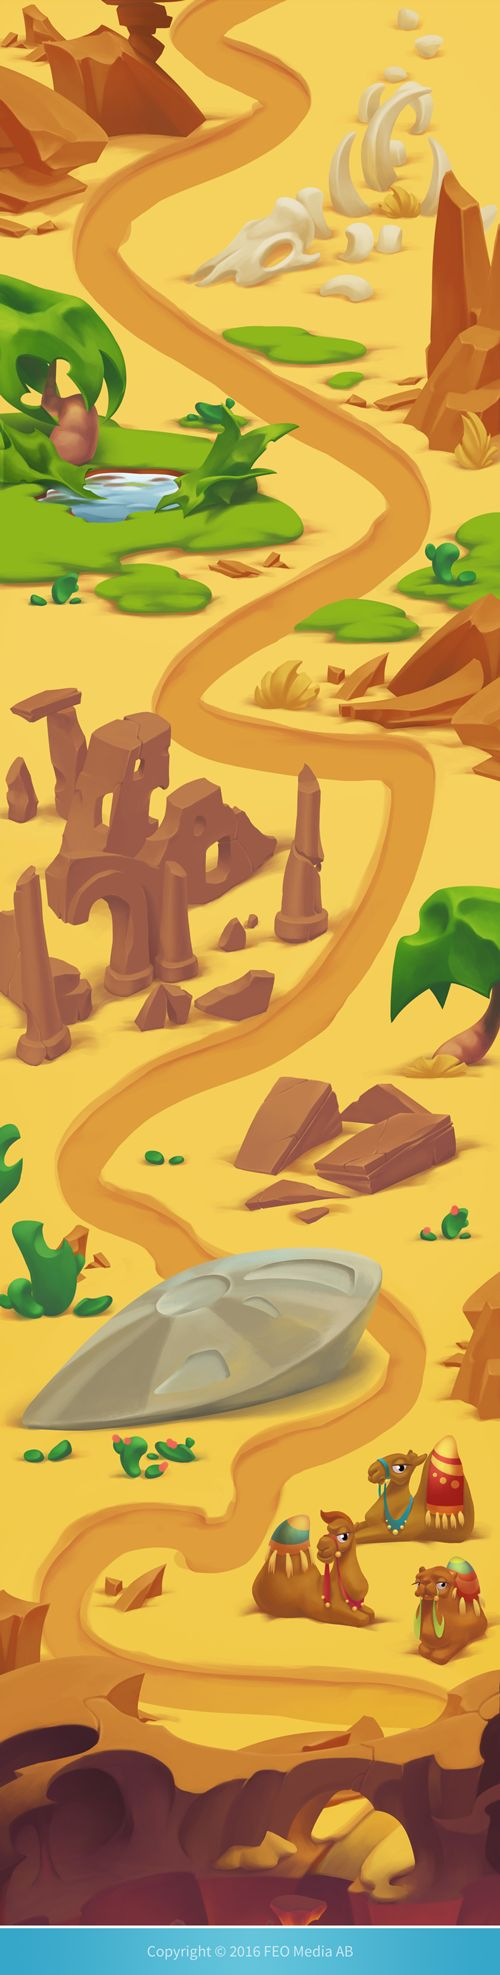 381 best game maps images on pinterest game background game ui backgrounds for the level maps for the game called crozzles desert mapworldmapgame gumiabroncs Choice Image